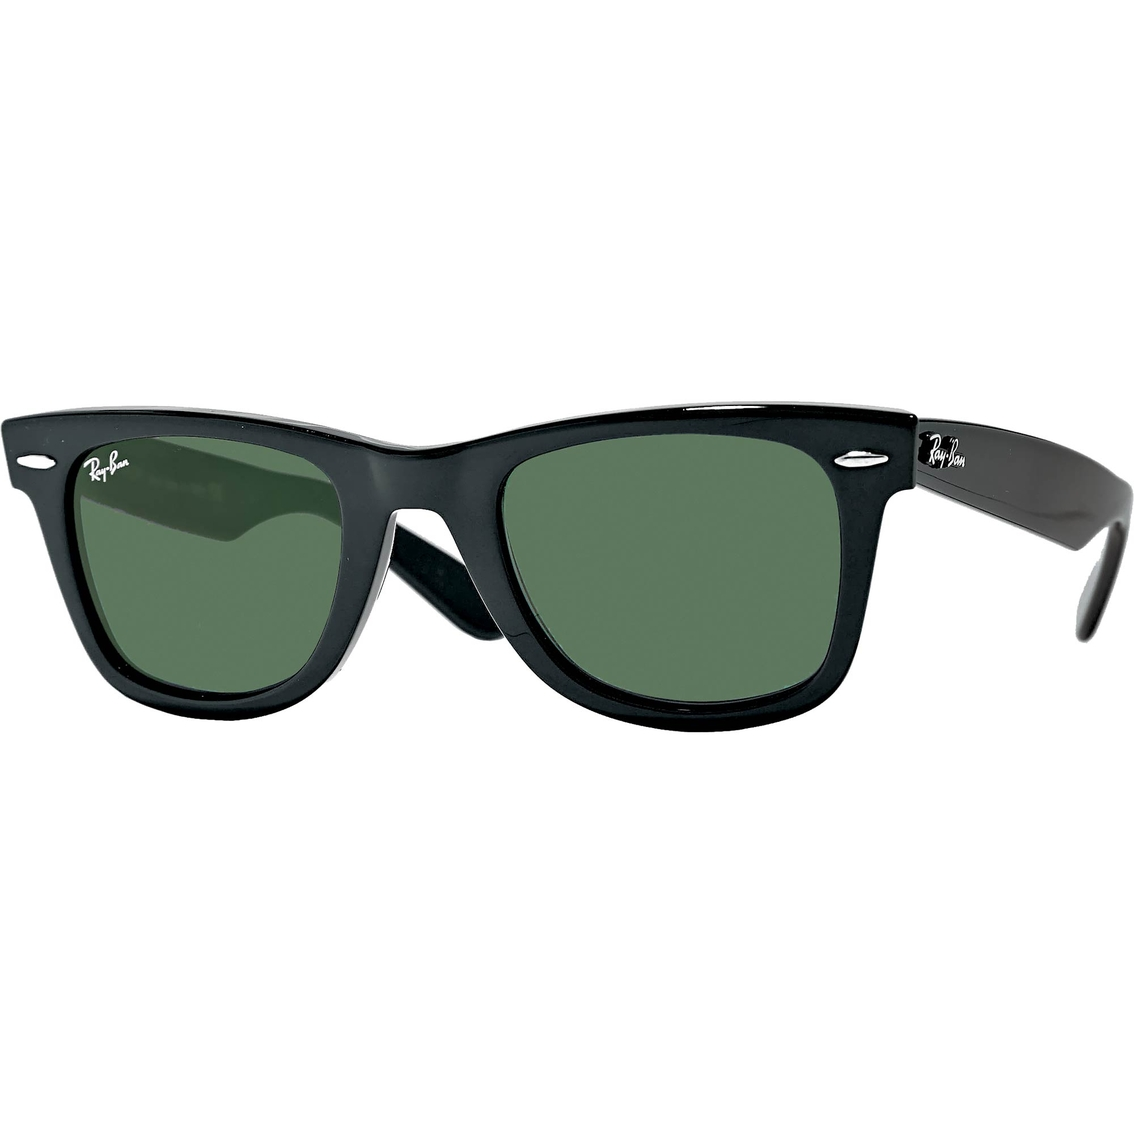 wafers sunglasses  Ray-ban Original Wayfarer Sunglasses